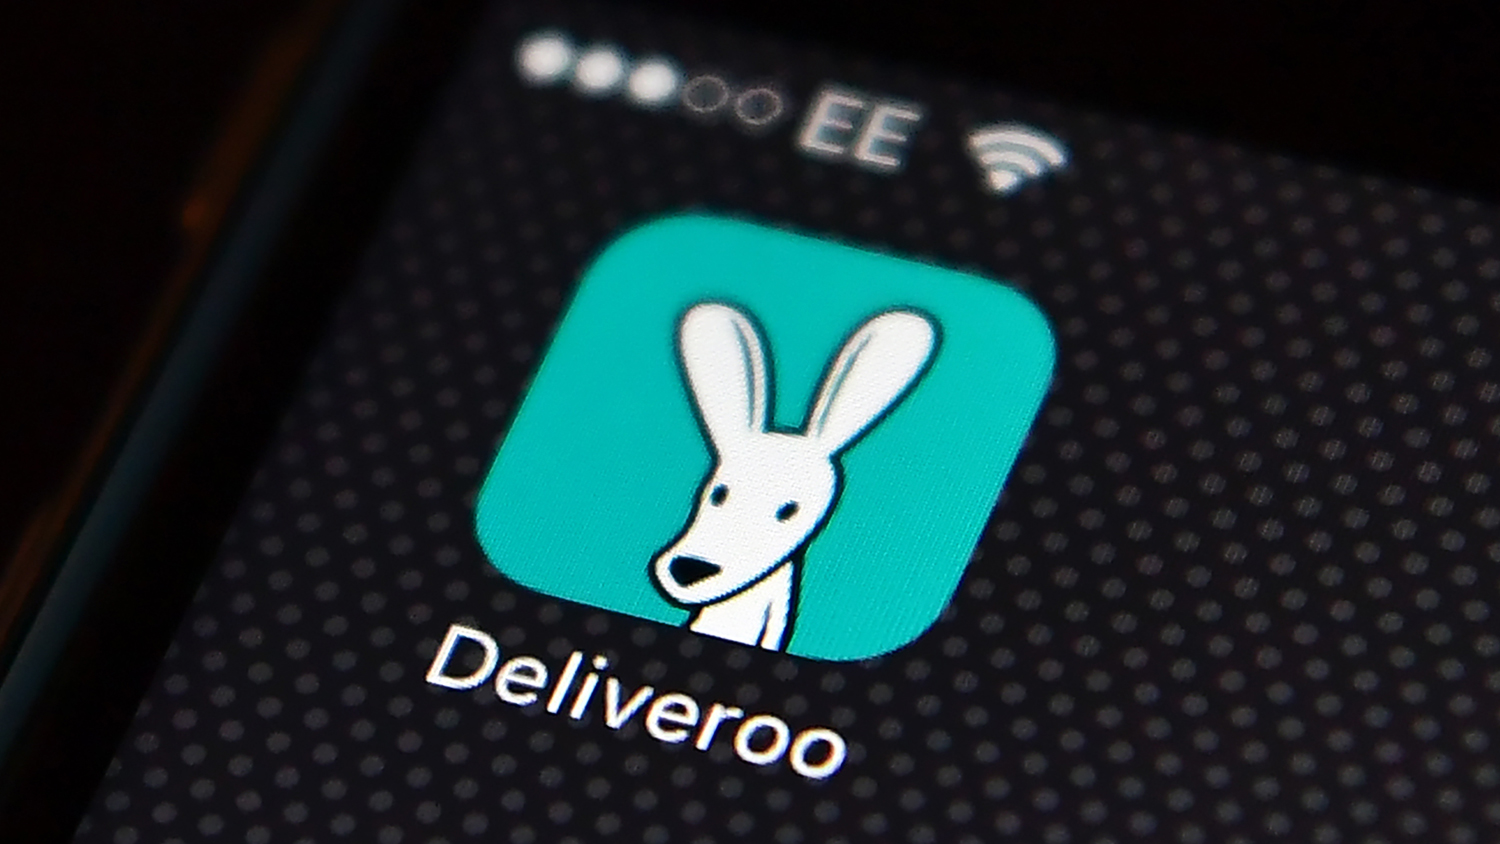 trip advisor and deliveroo